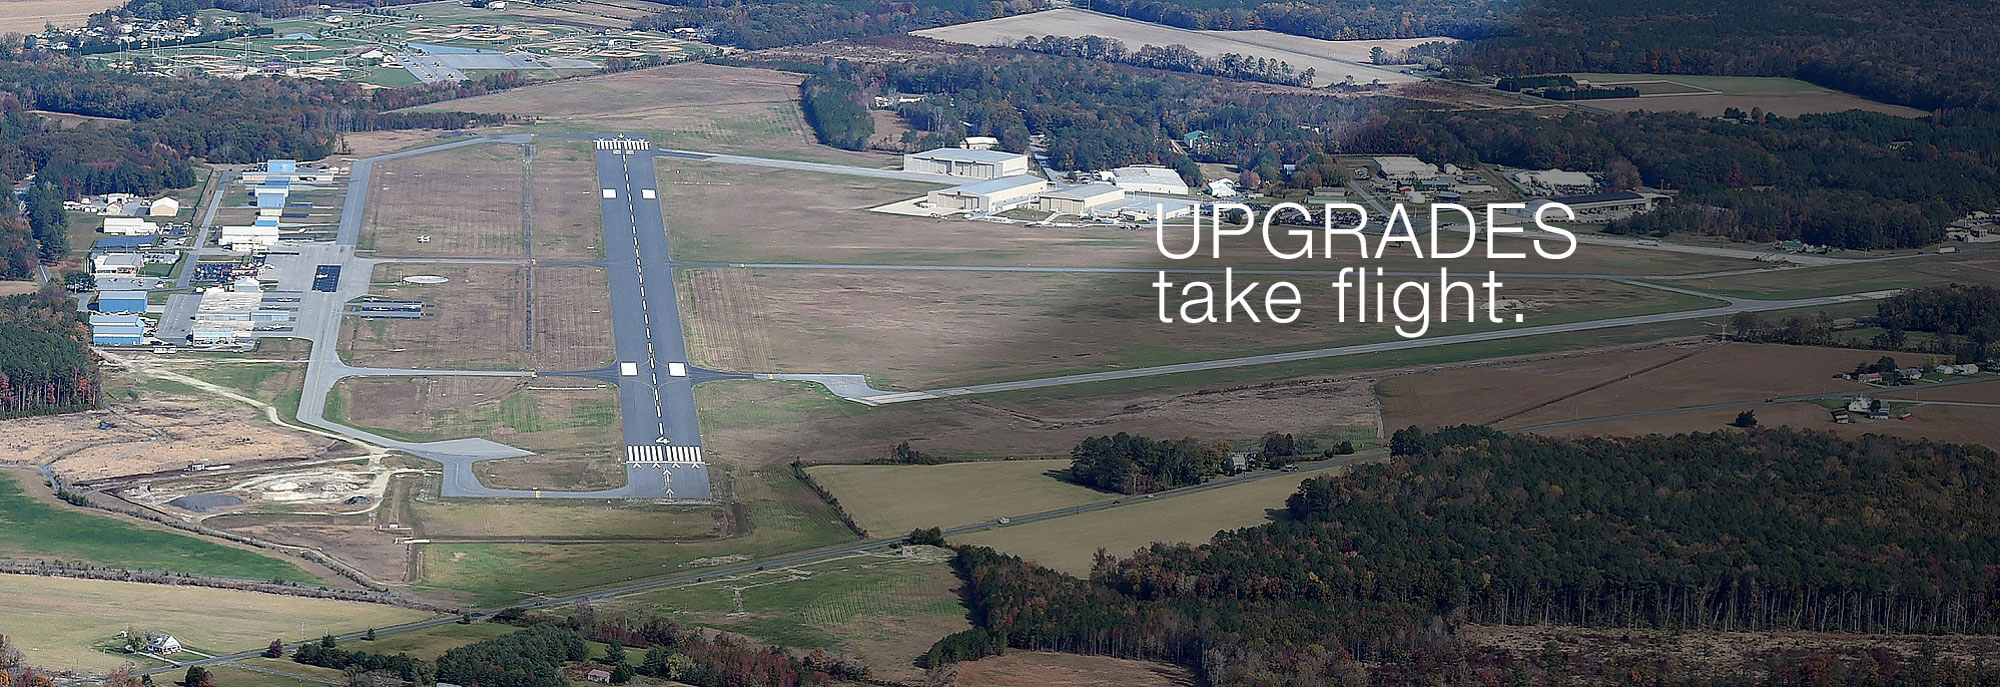 aerial view of sussex airport promoting upgrades take flight